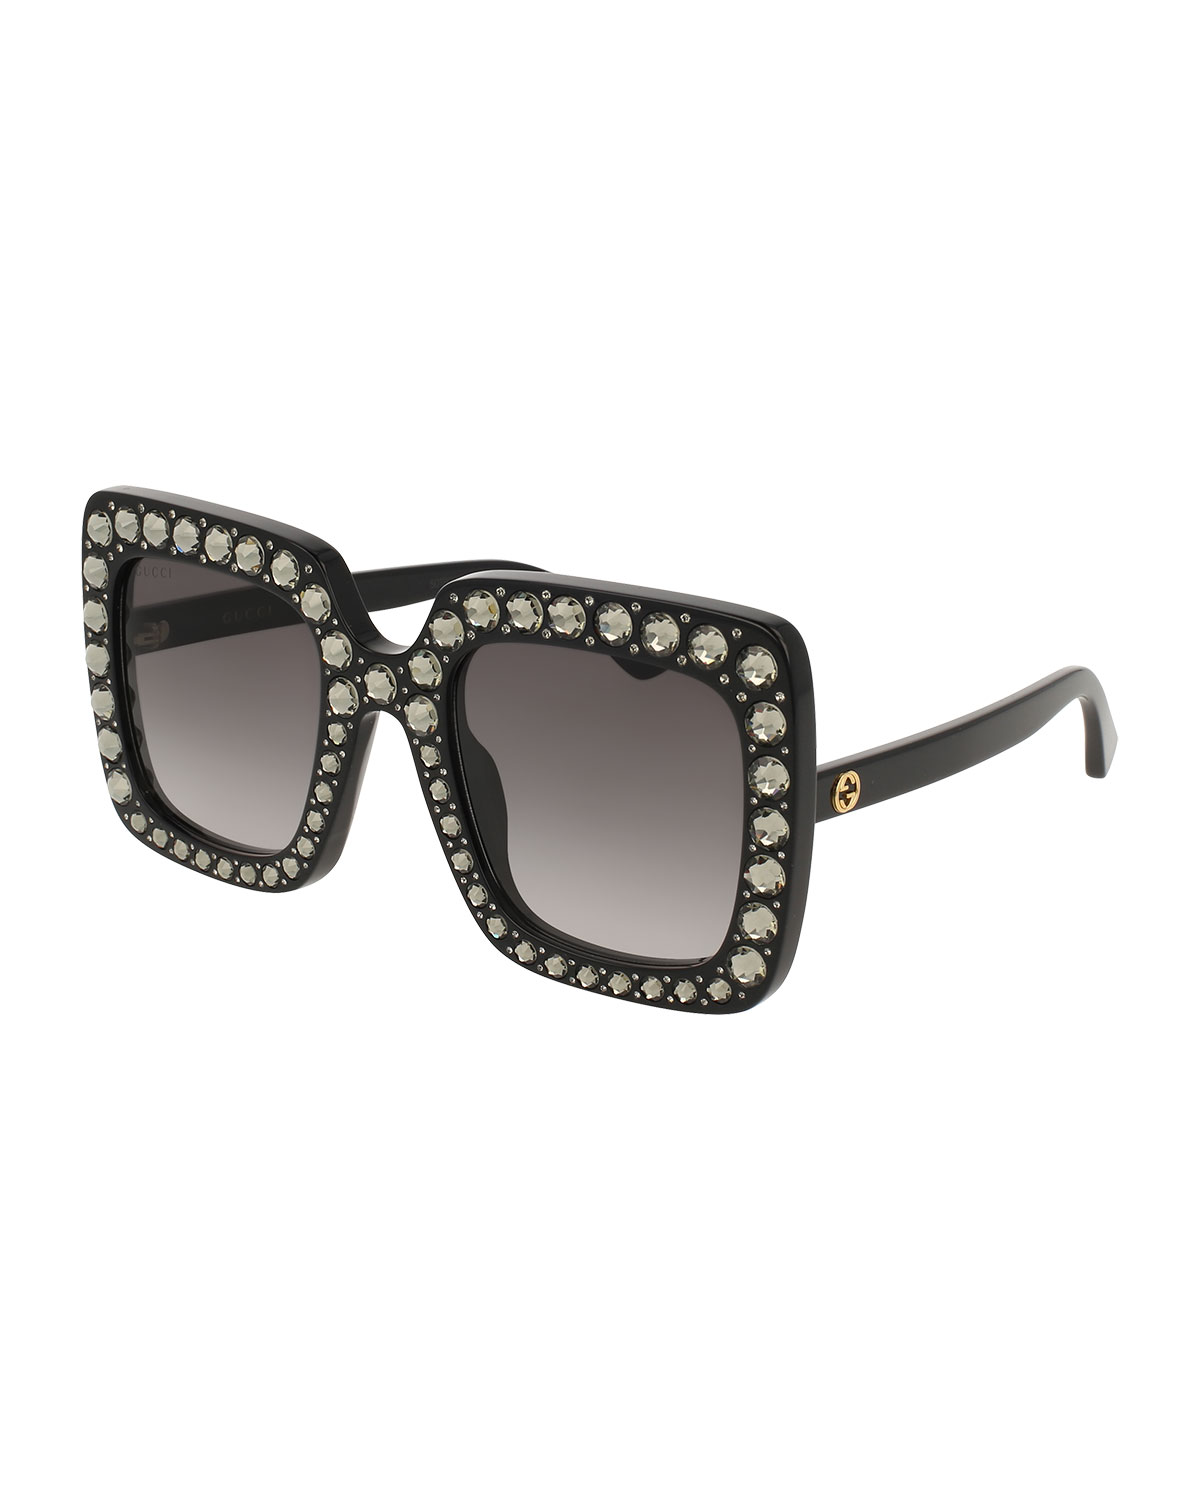 58a914ed43d Gucci Sunglasses With Diamonds - Image Diamond and Wallpaper ...